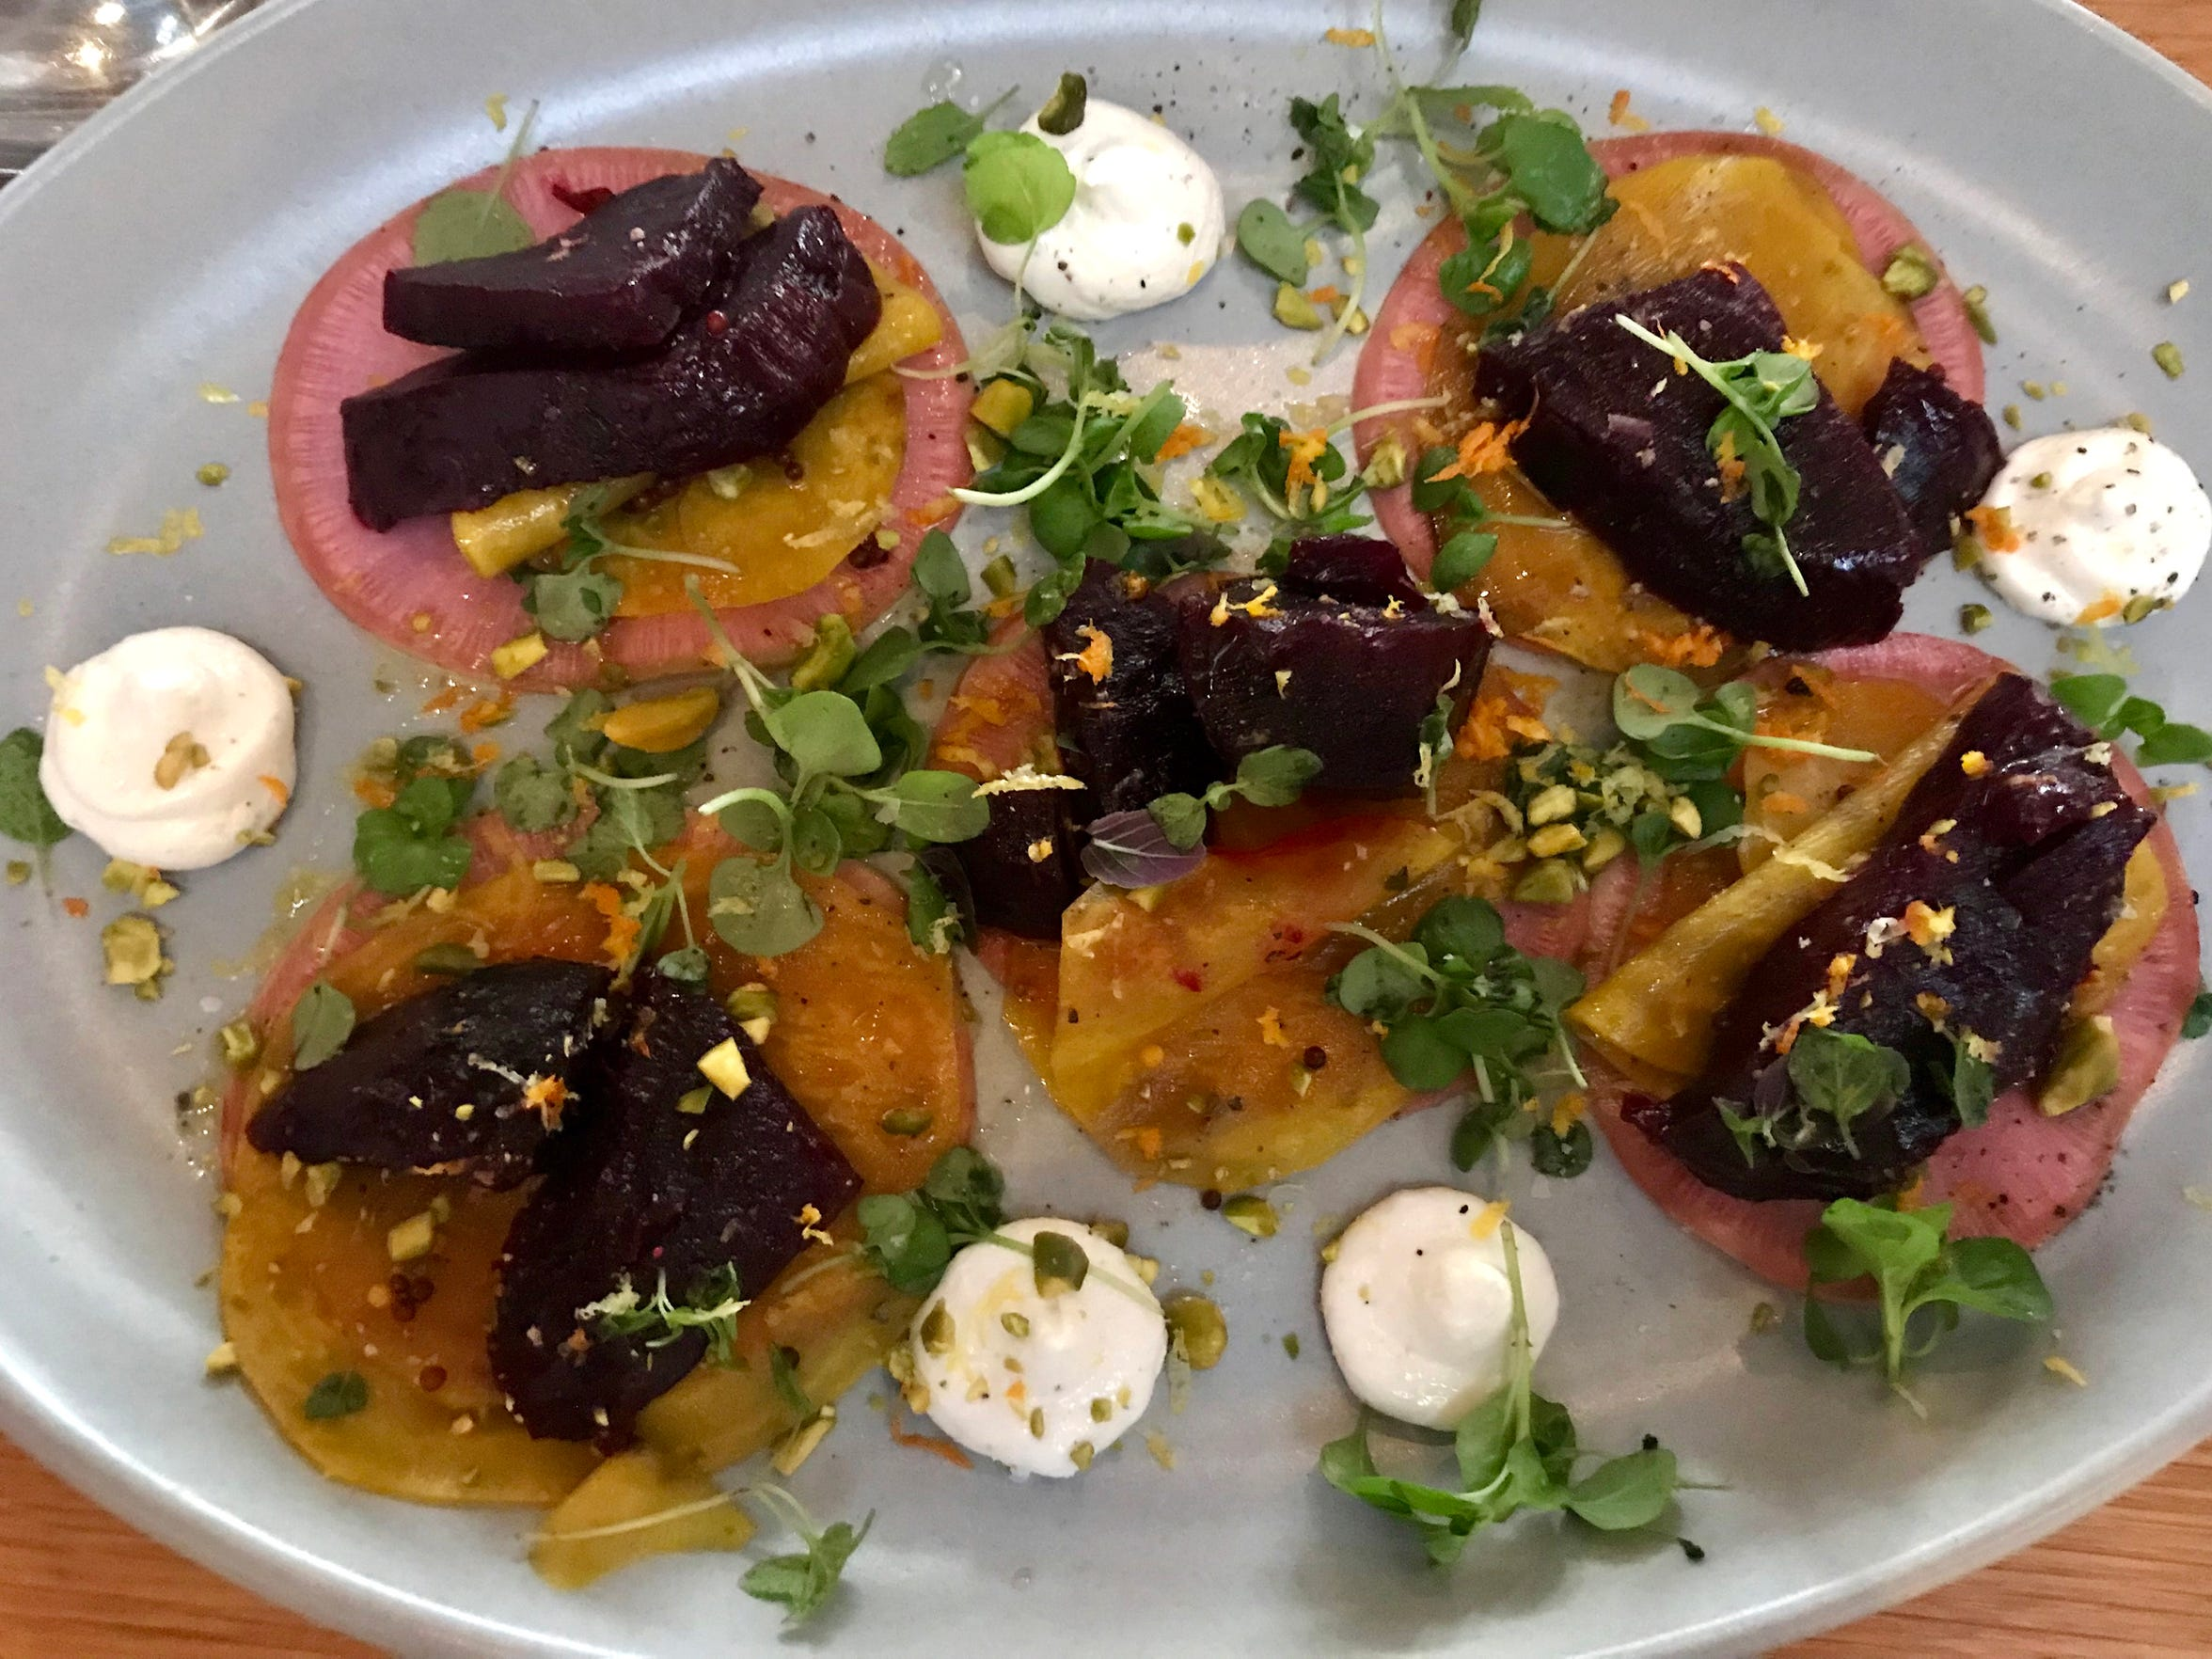 Tre Rivali, the Mediterranean restaurant in the Kimpton Journeyman Hotel at 200 N. Broadway, served a salad of roasted beets with thin pickled beets, cumin yogurt and pistachios, brightened with orange zest.